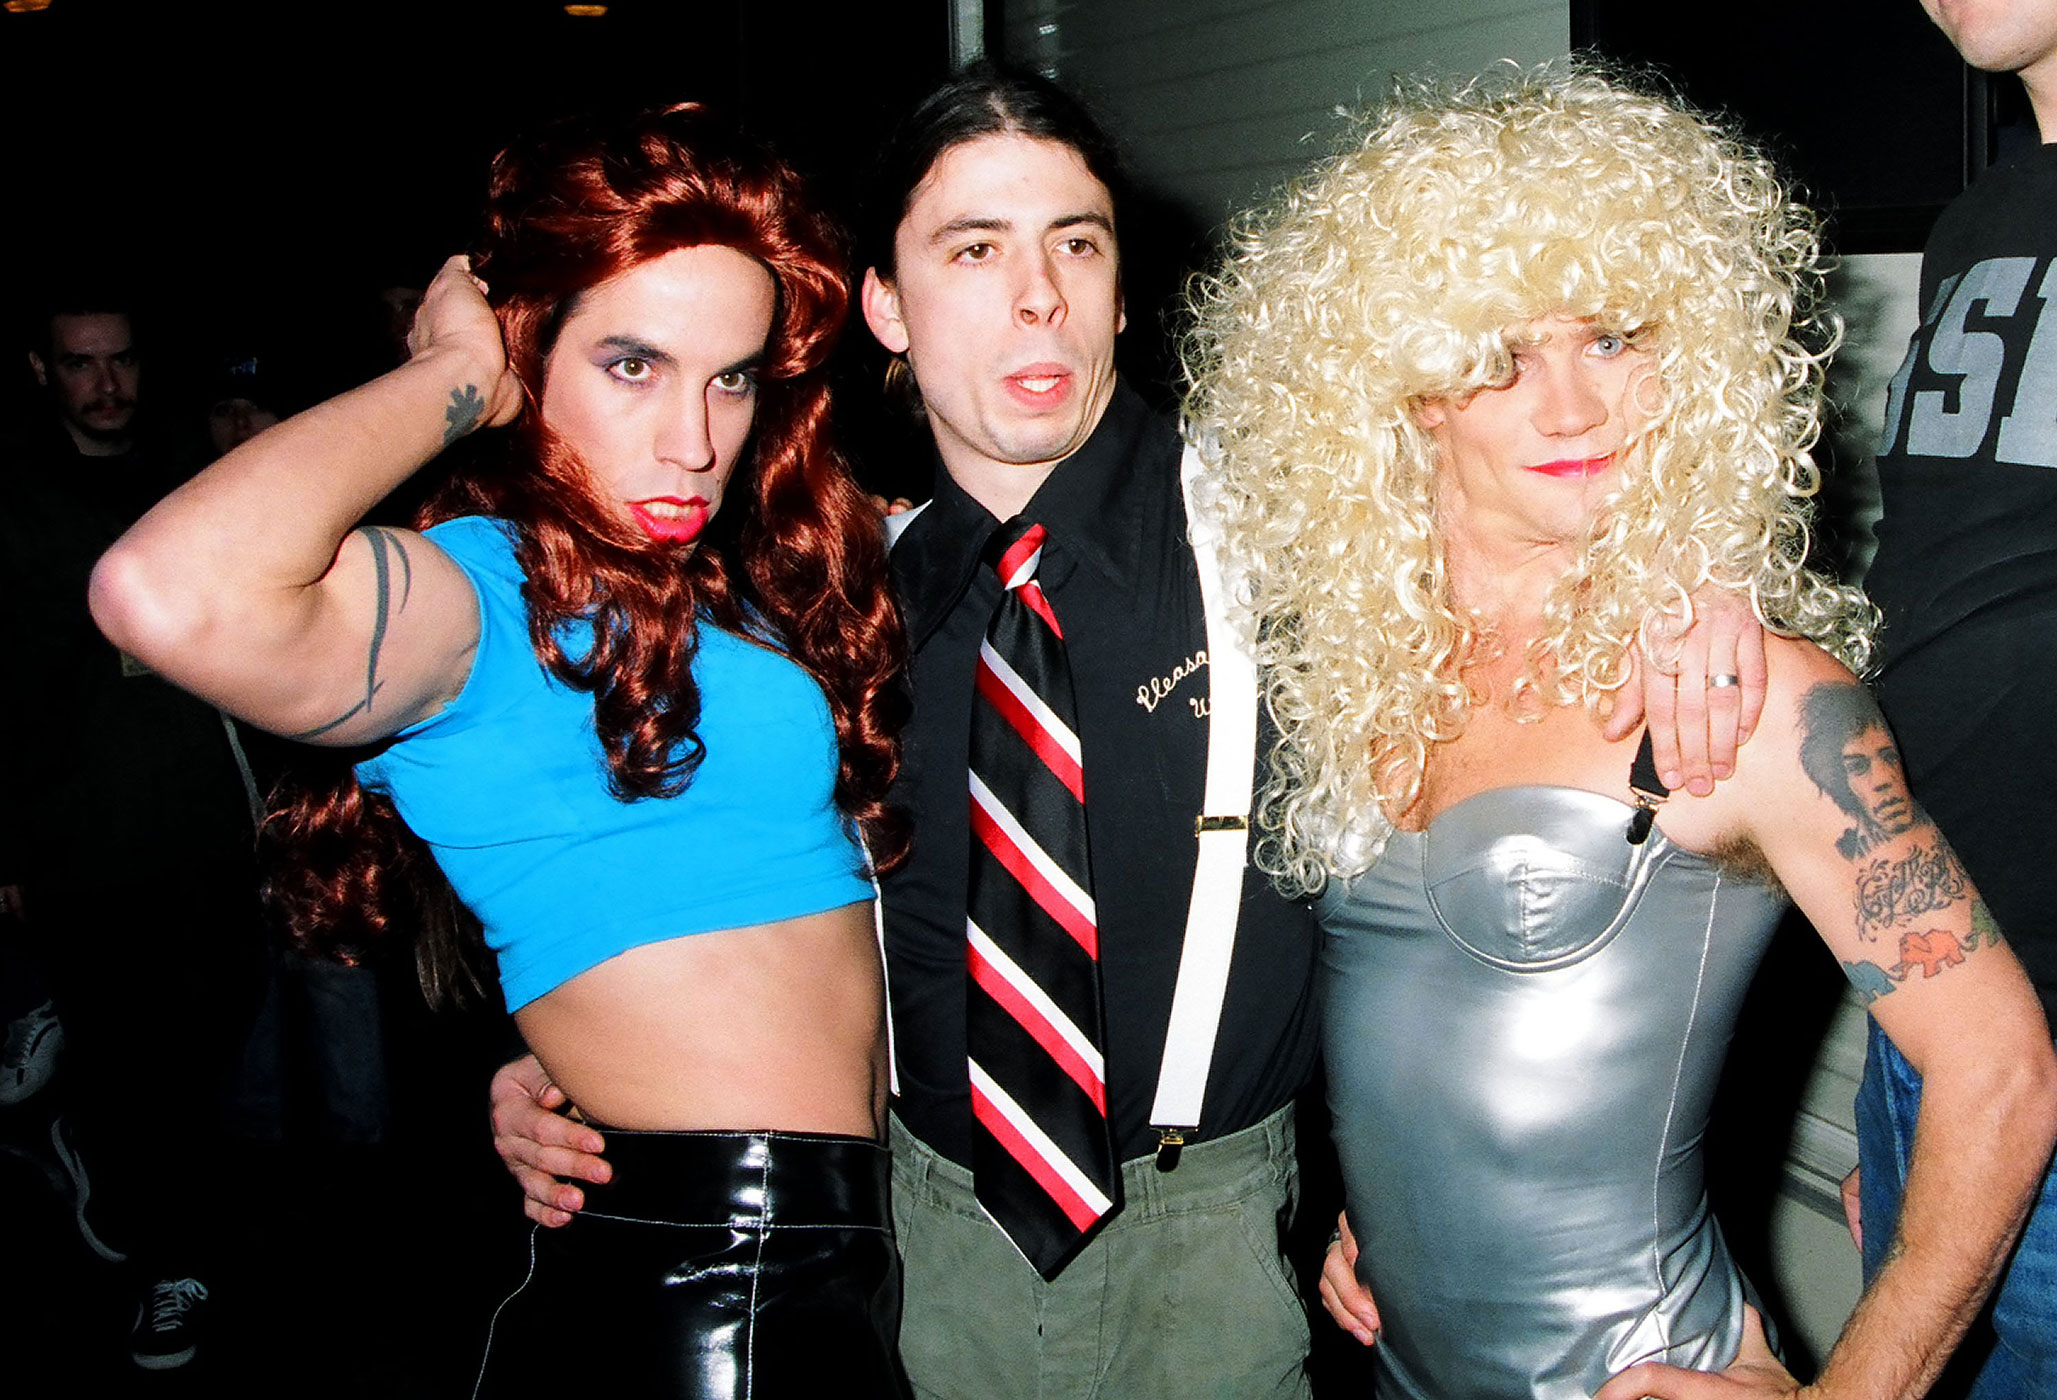 Dave Grohl of Nirvana (center) with Anthony Kiedis and Flea of Red Hot Chili Peppers at MTV Live and Loud in December 1993.